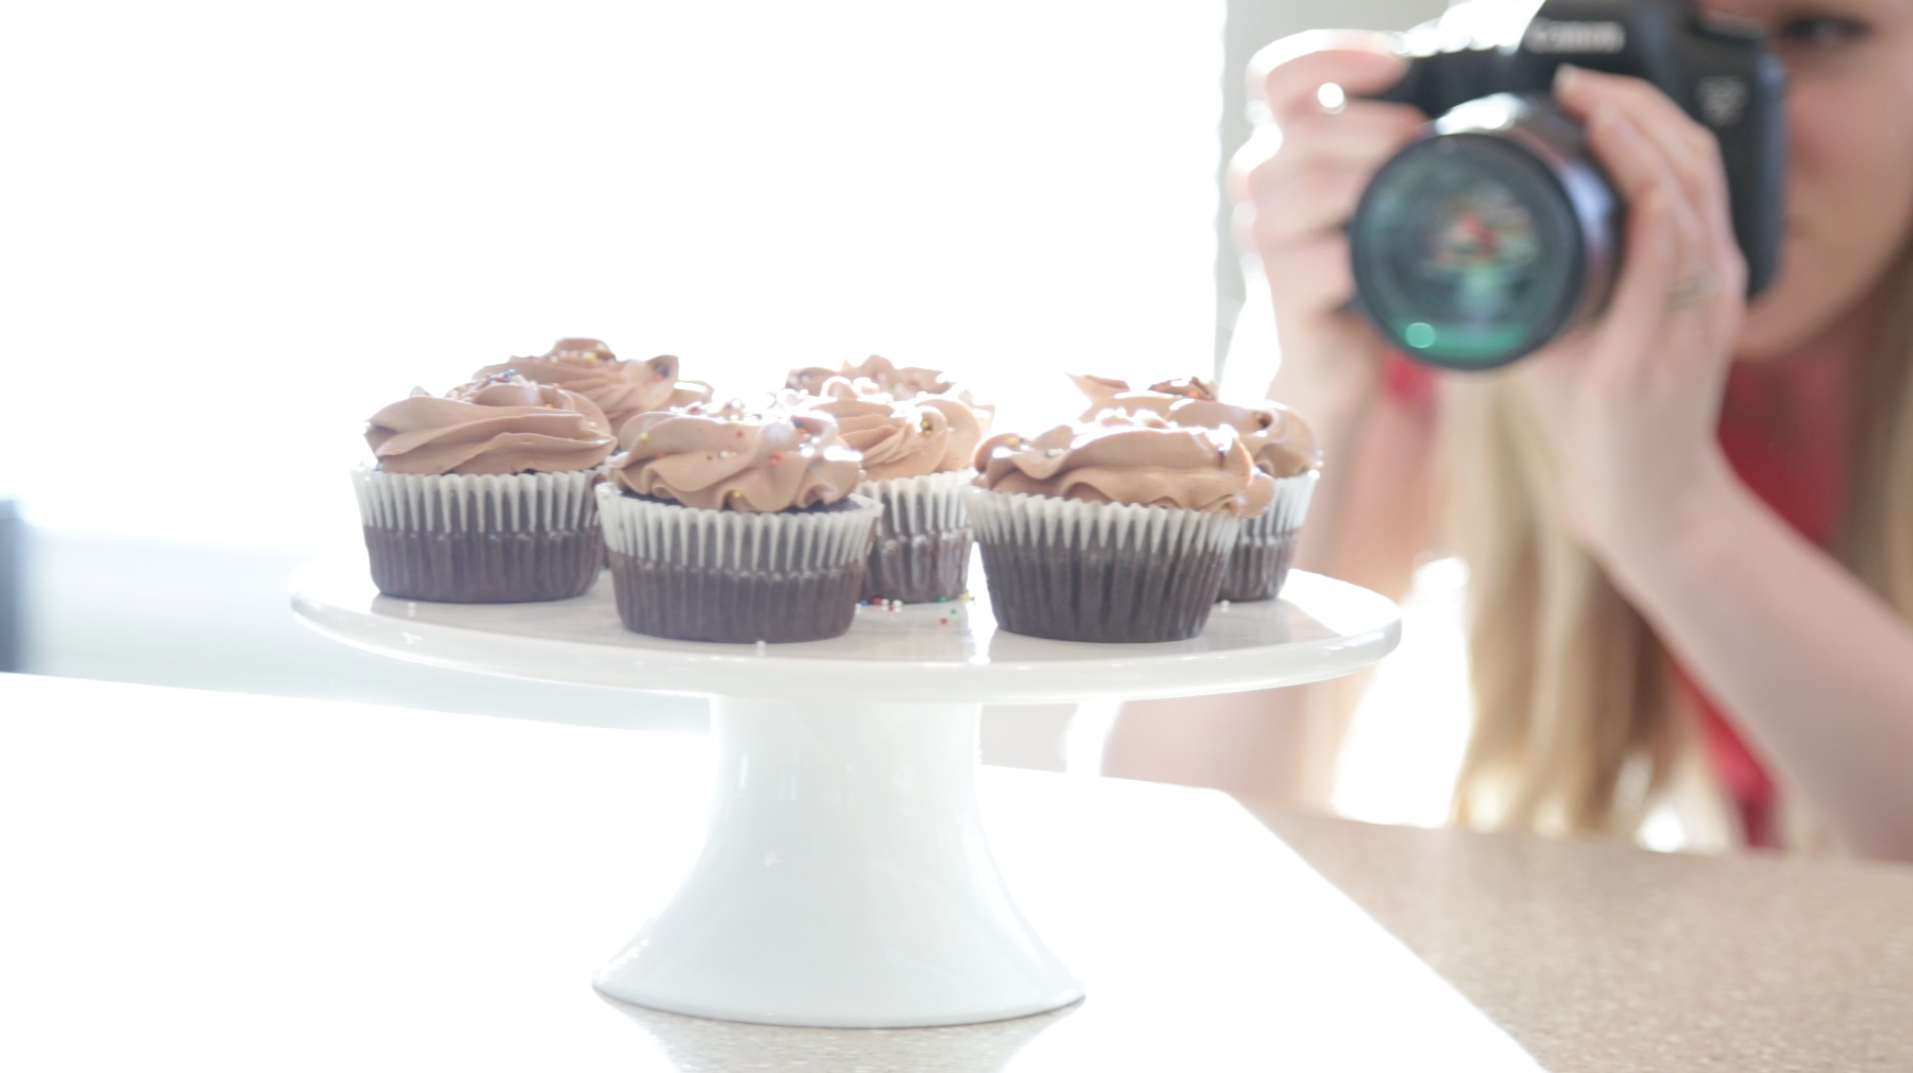 FoodBloggerPhotography